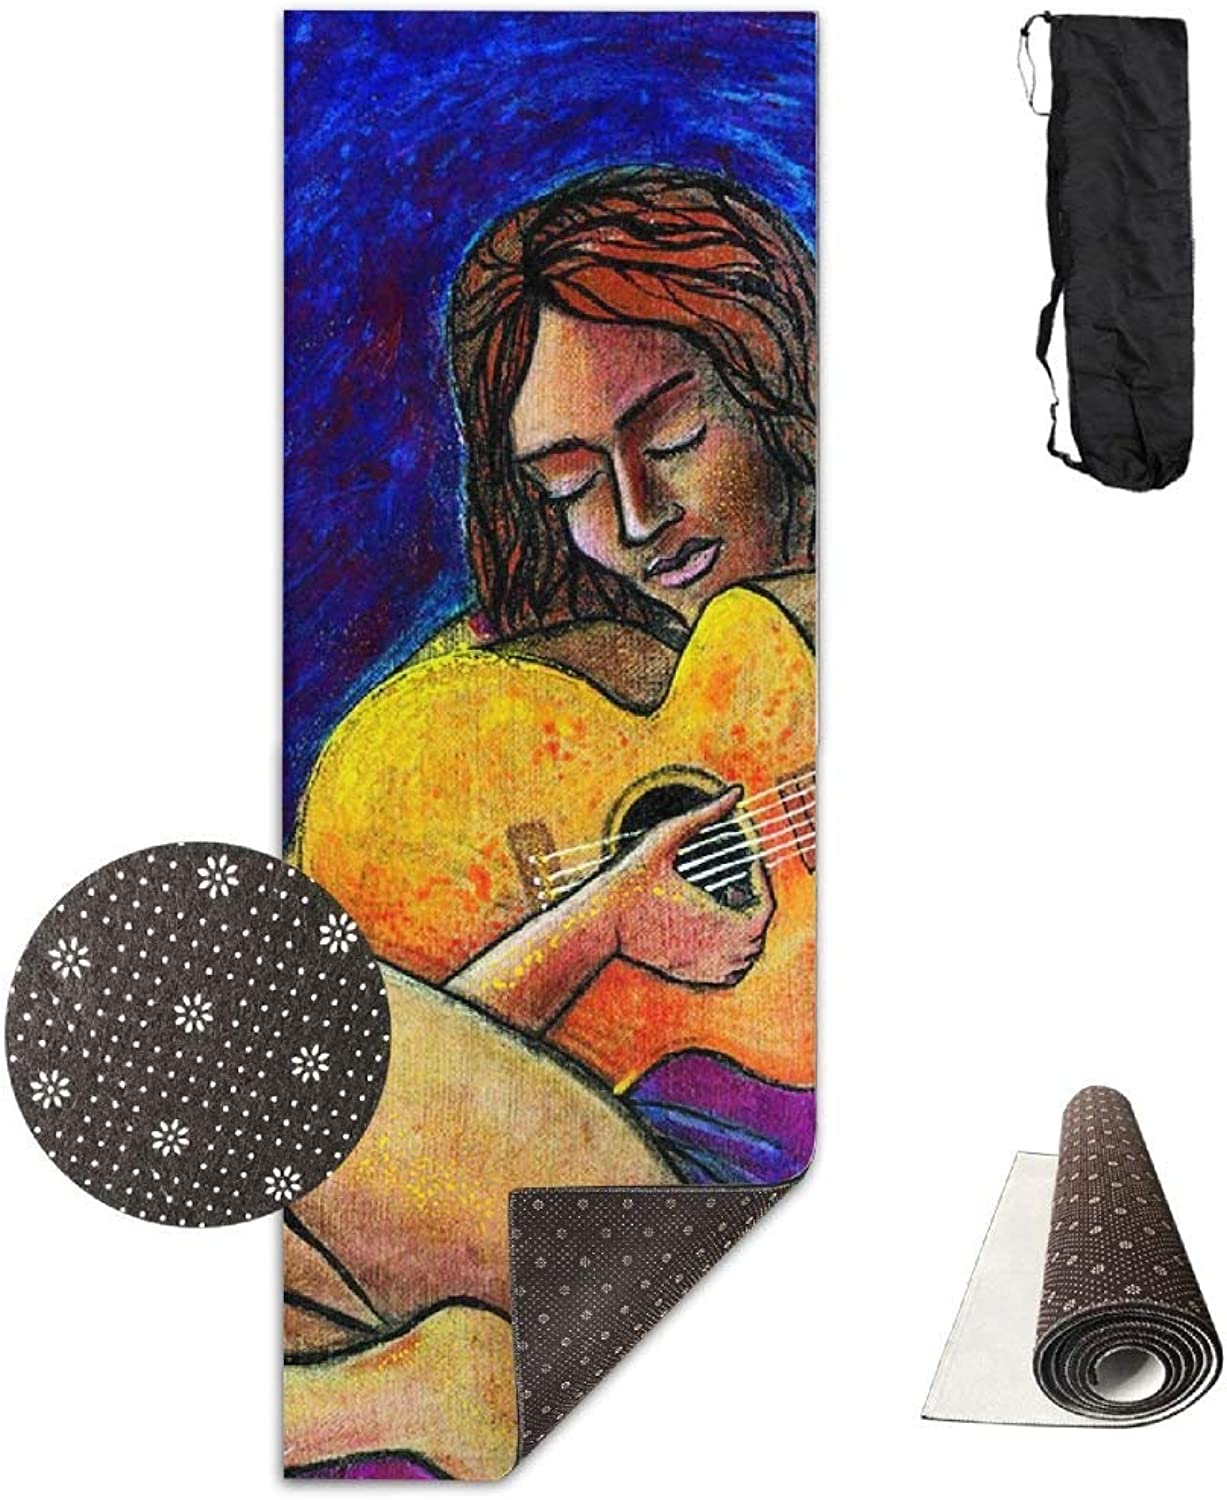 Classical Guitar Painting Yoga Mat  Advanced Yoga Mat  NonSlip Lining  Easy to Clean  LatexFree  Lightweight and Durable  Long 180 Width 61cm